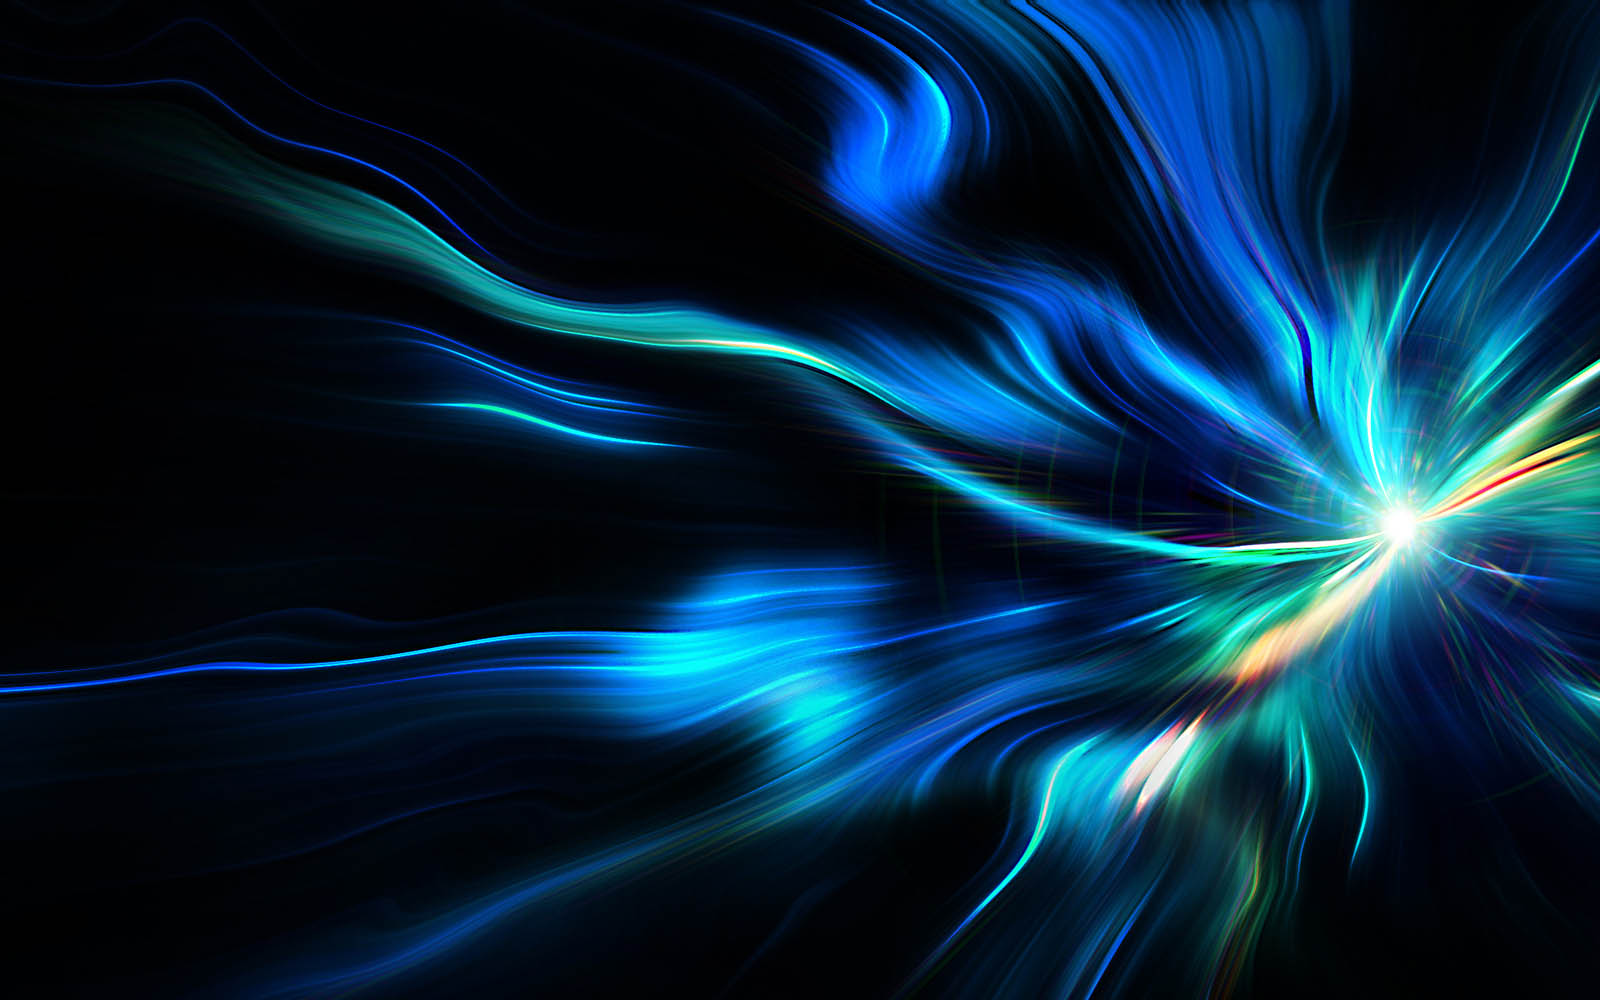 Wallpapers shining 3d wallpapers for 3d wallpaper for pc